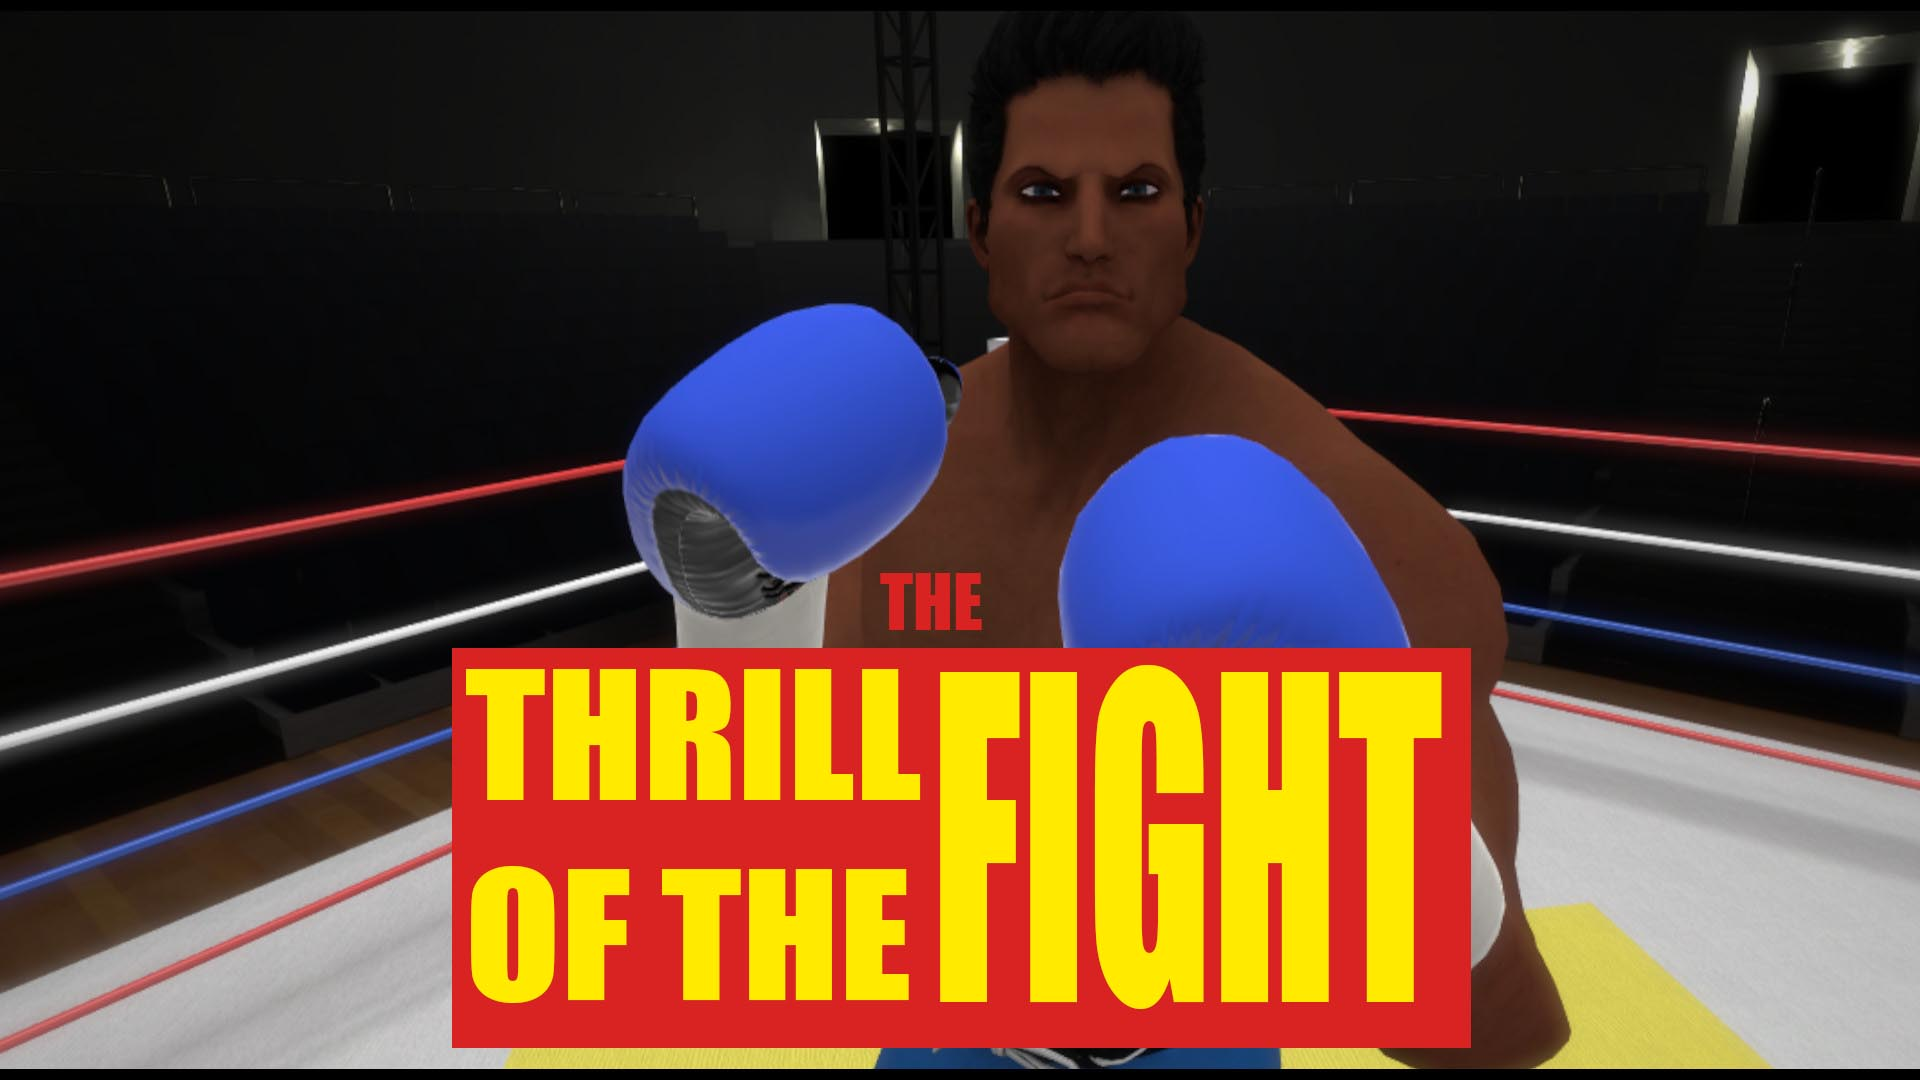 thrill of the fight